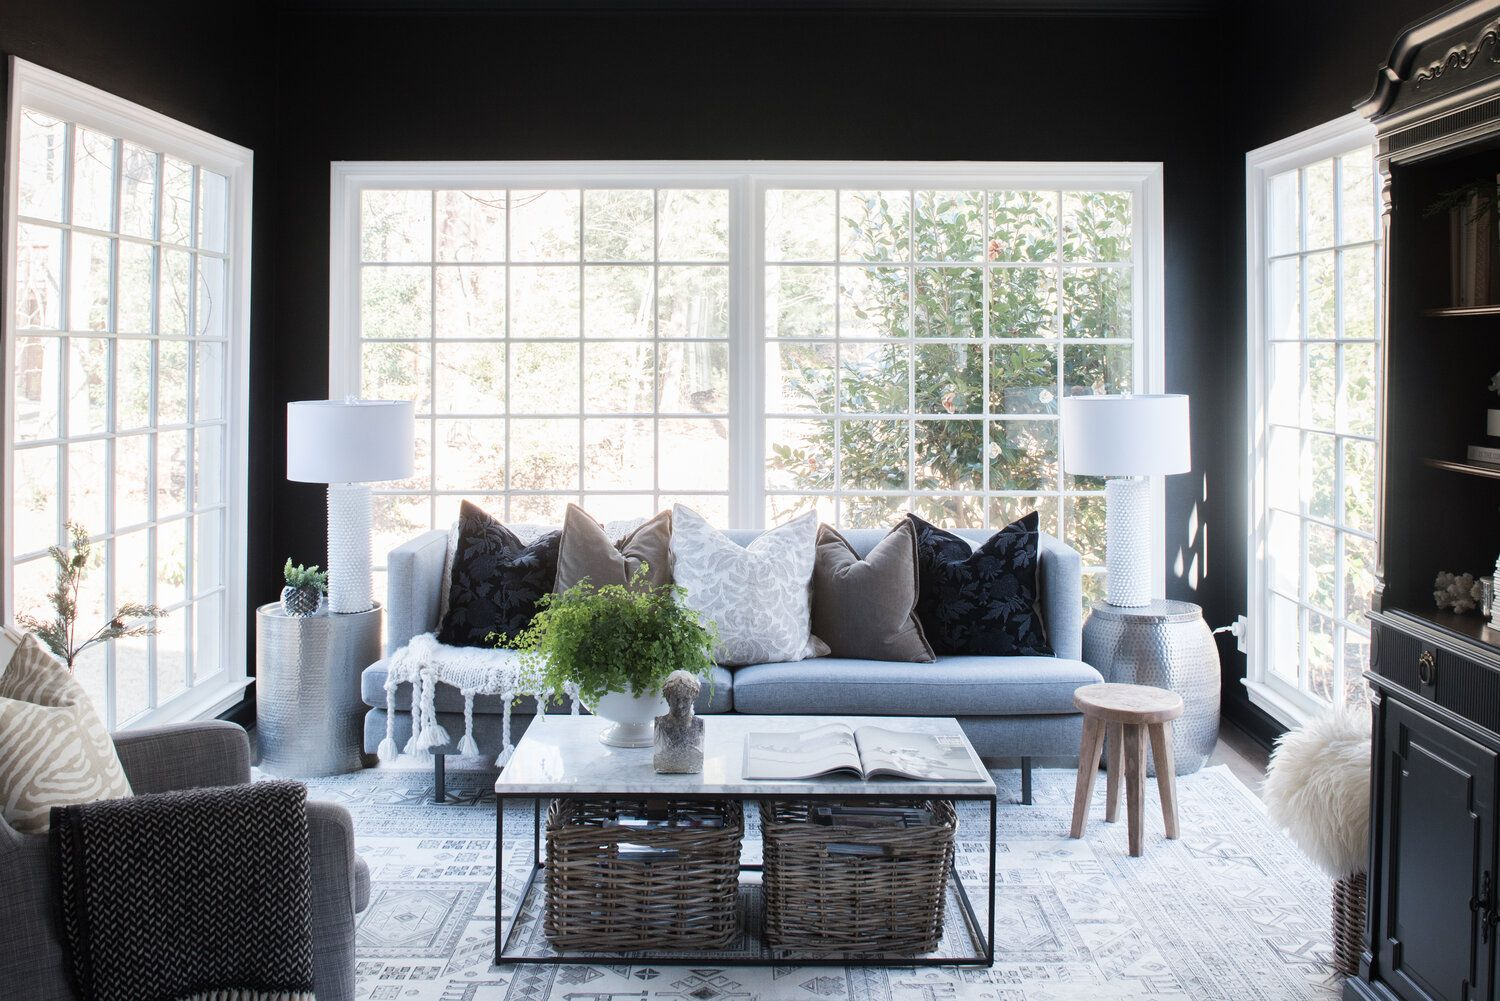 The Easiest Way To Find Your Home Style Choose Your Favorite Outfit House Of Valentina In 2020 Living Room Lounge Home Room